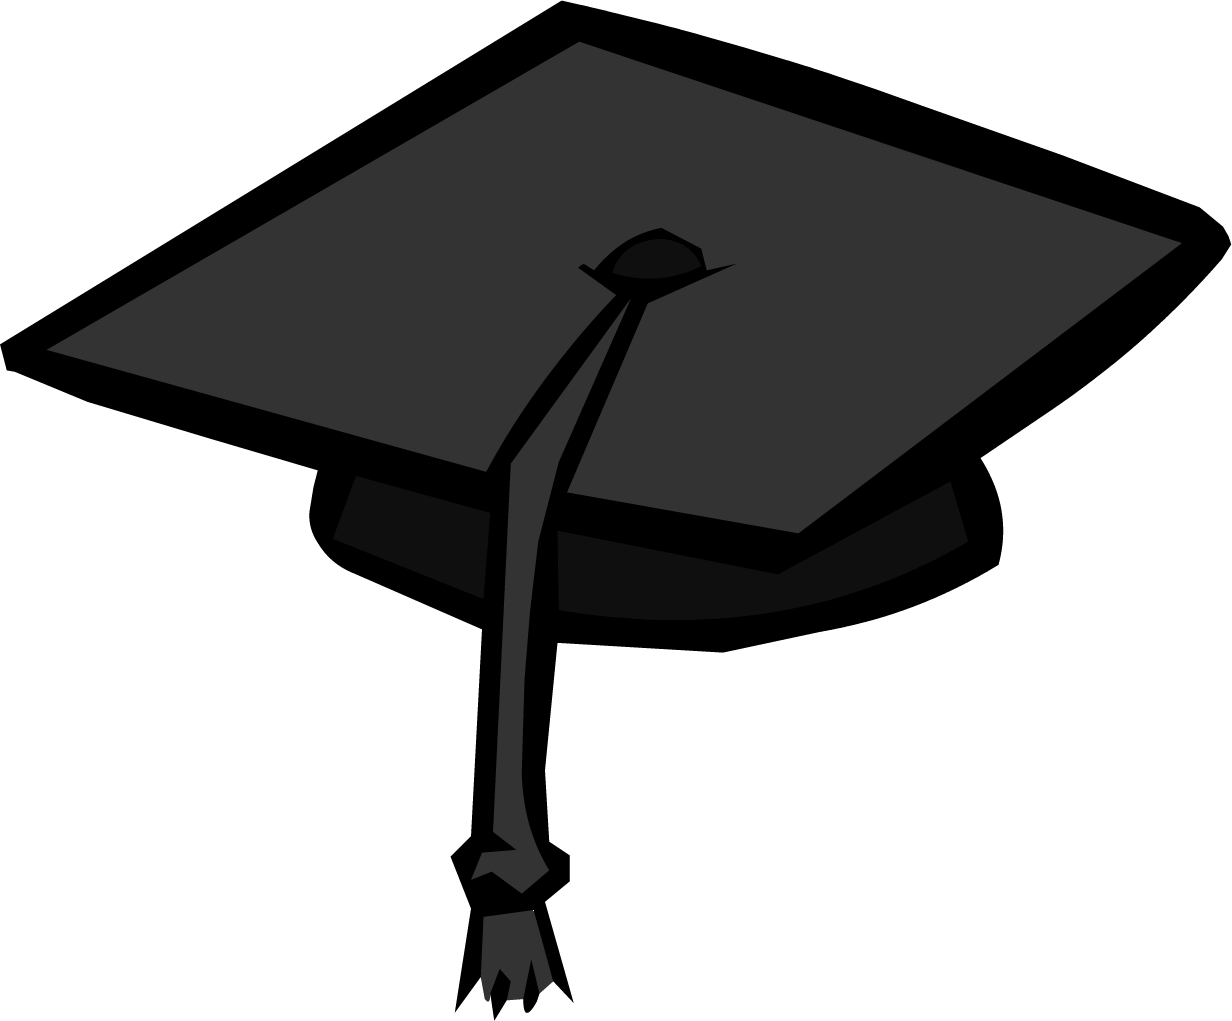 1232x1021 Graduation Cap Transparent Clipart 2